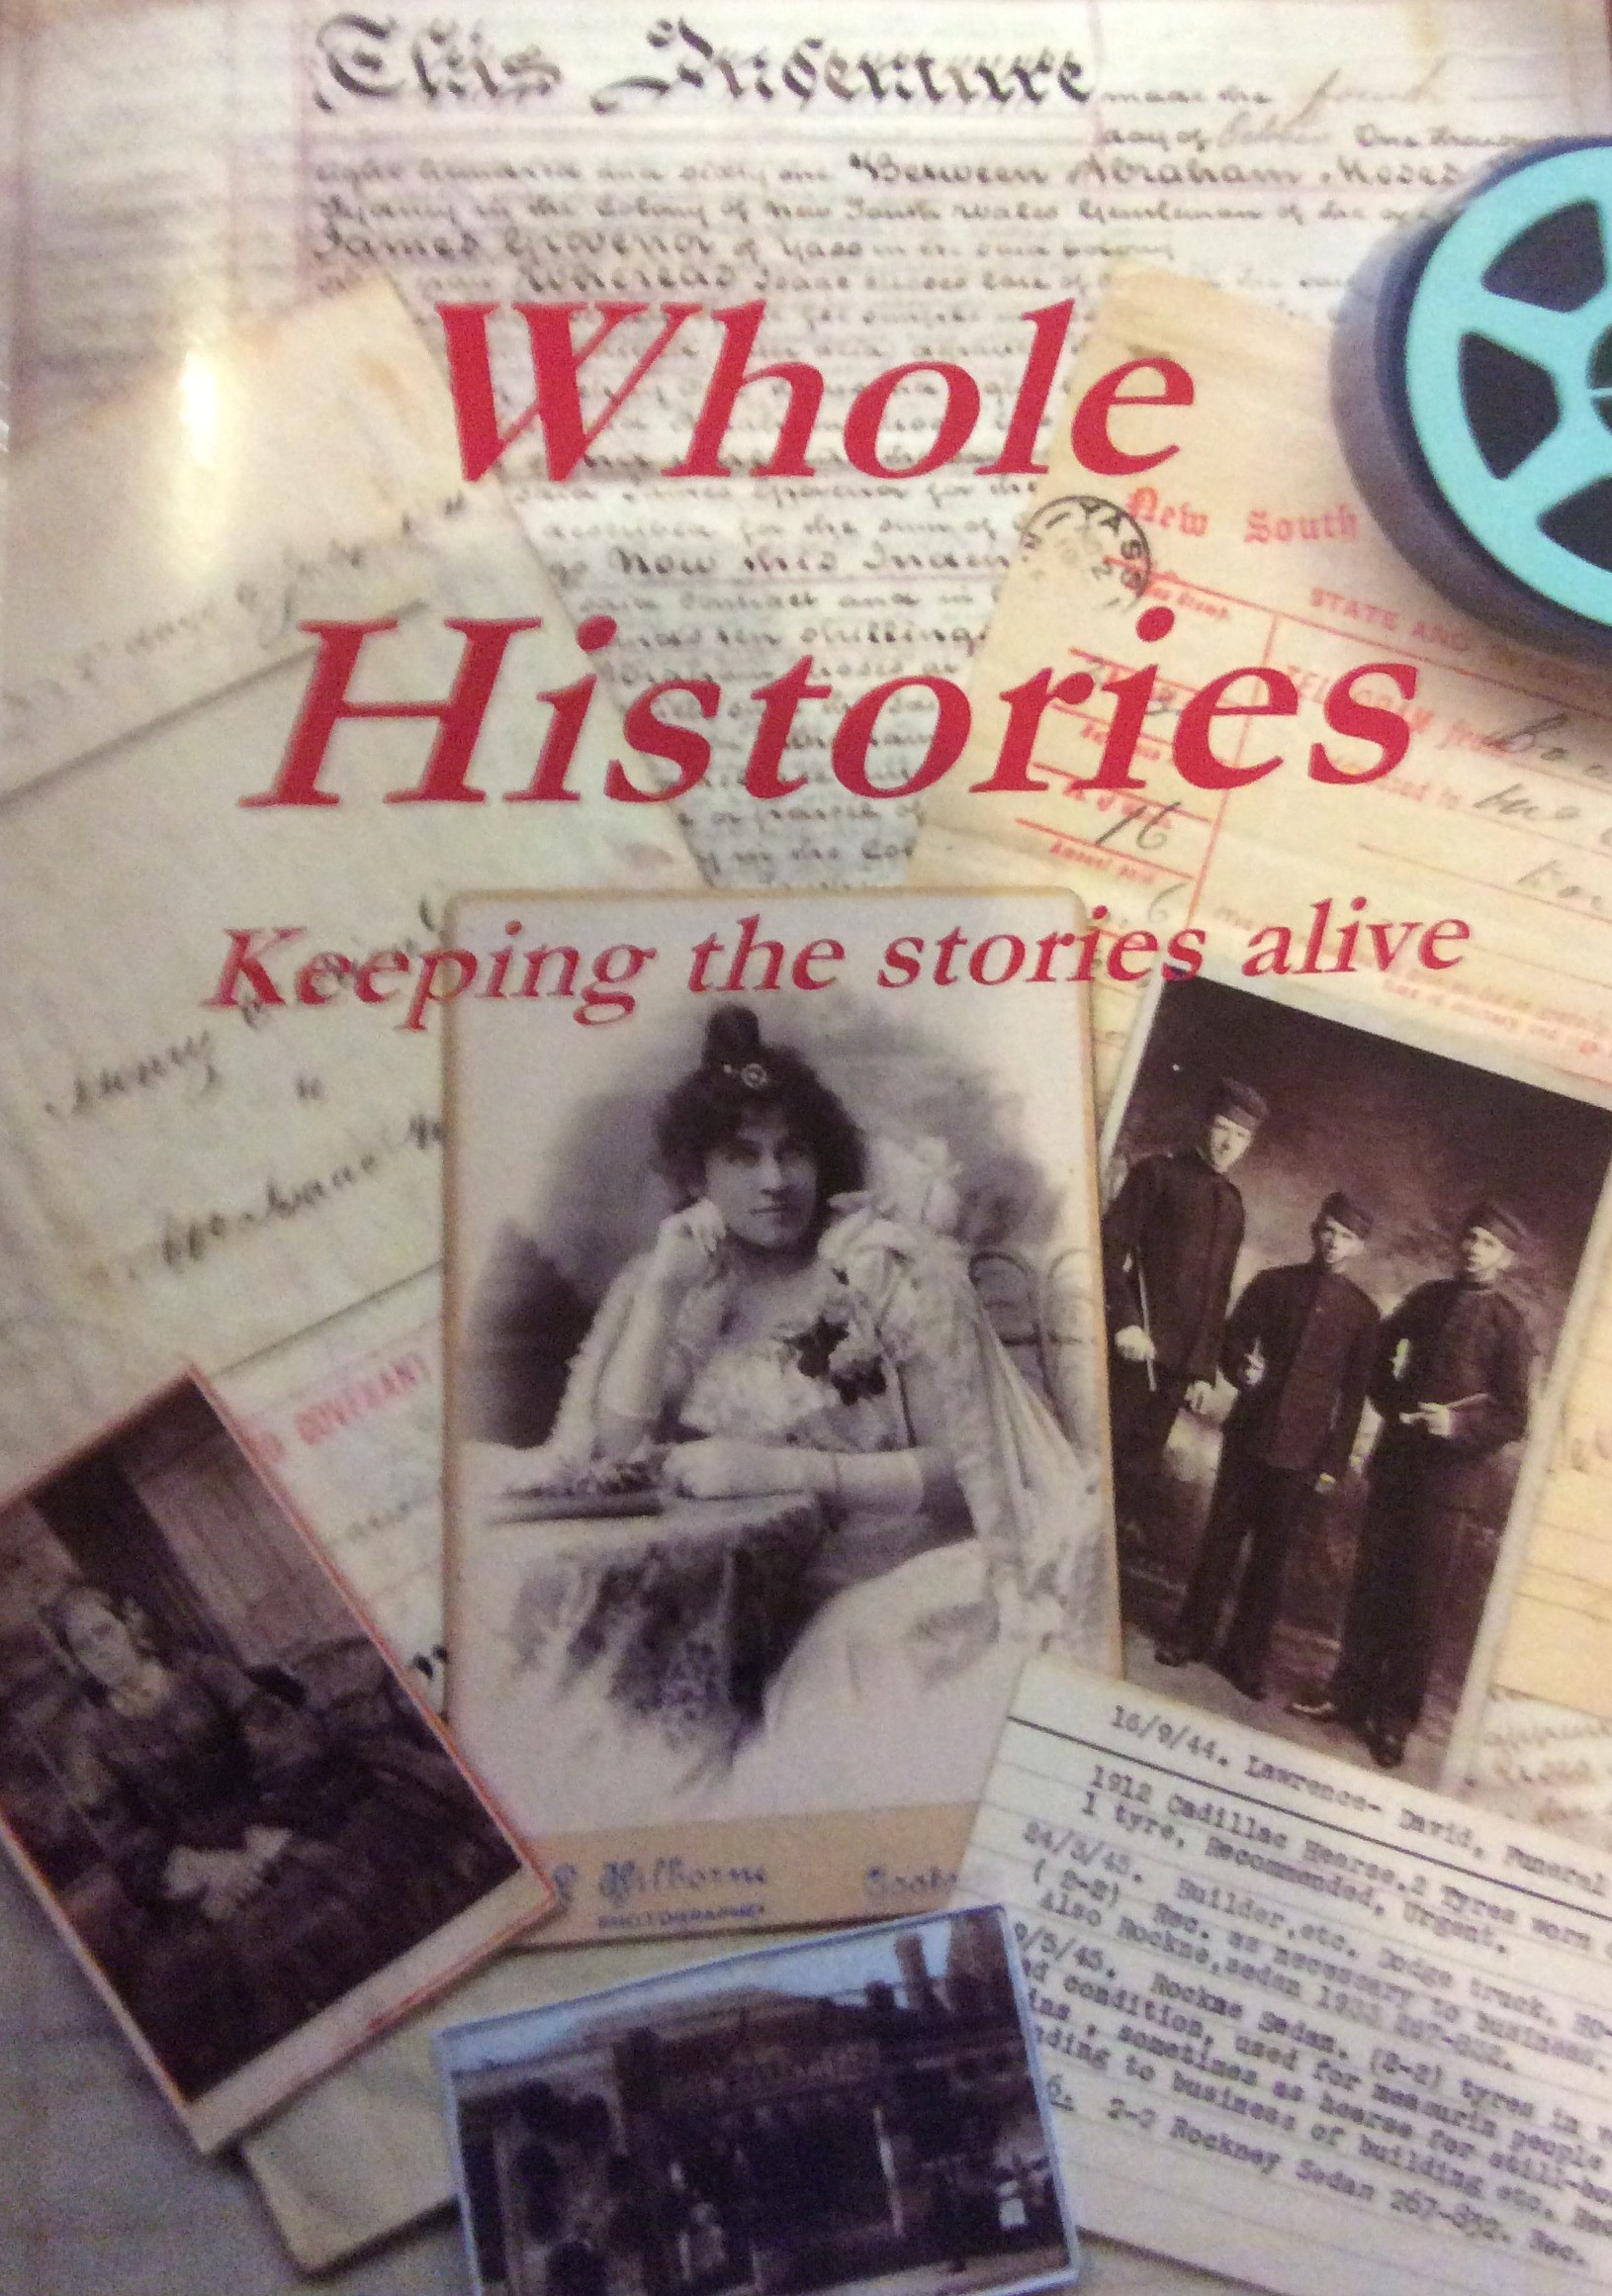 Whole Histories